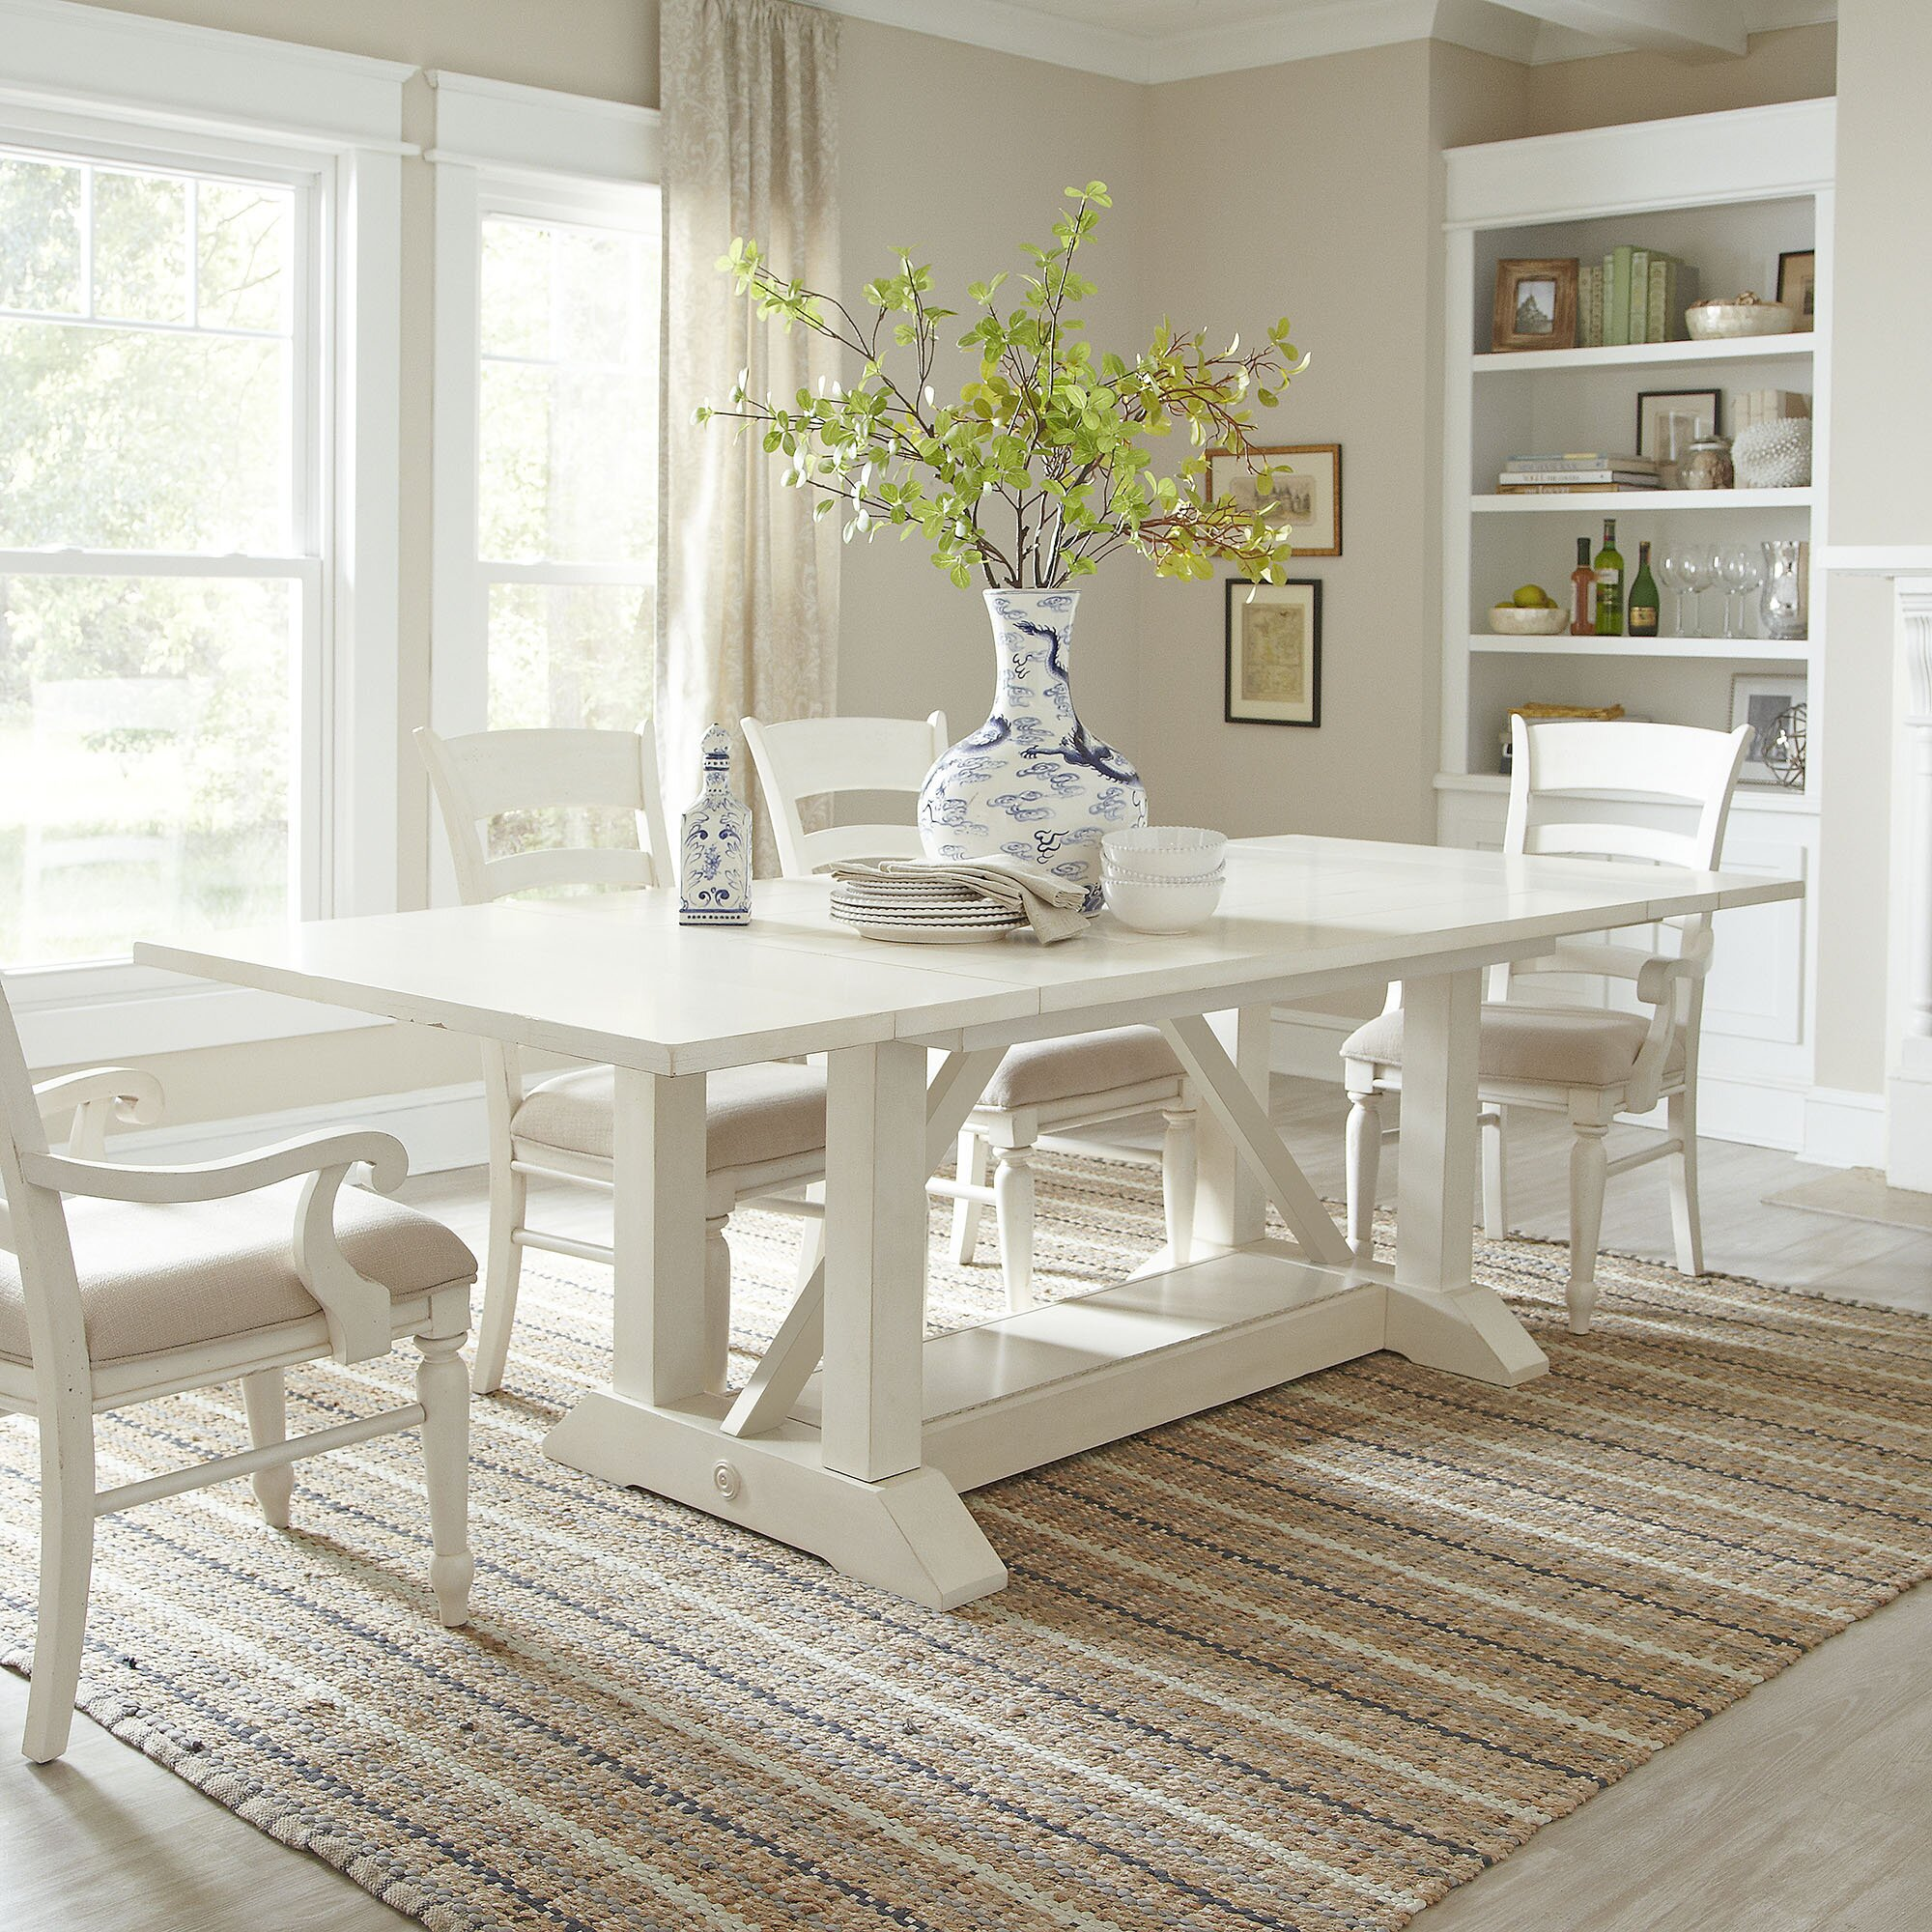 Birch lane lisbon extending dining table reviews wayfair for Nautical kitchen table